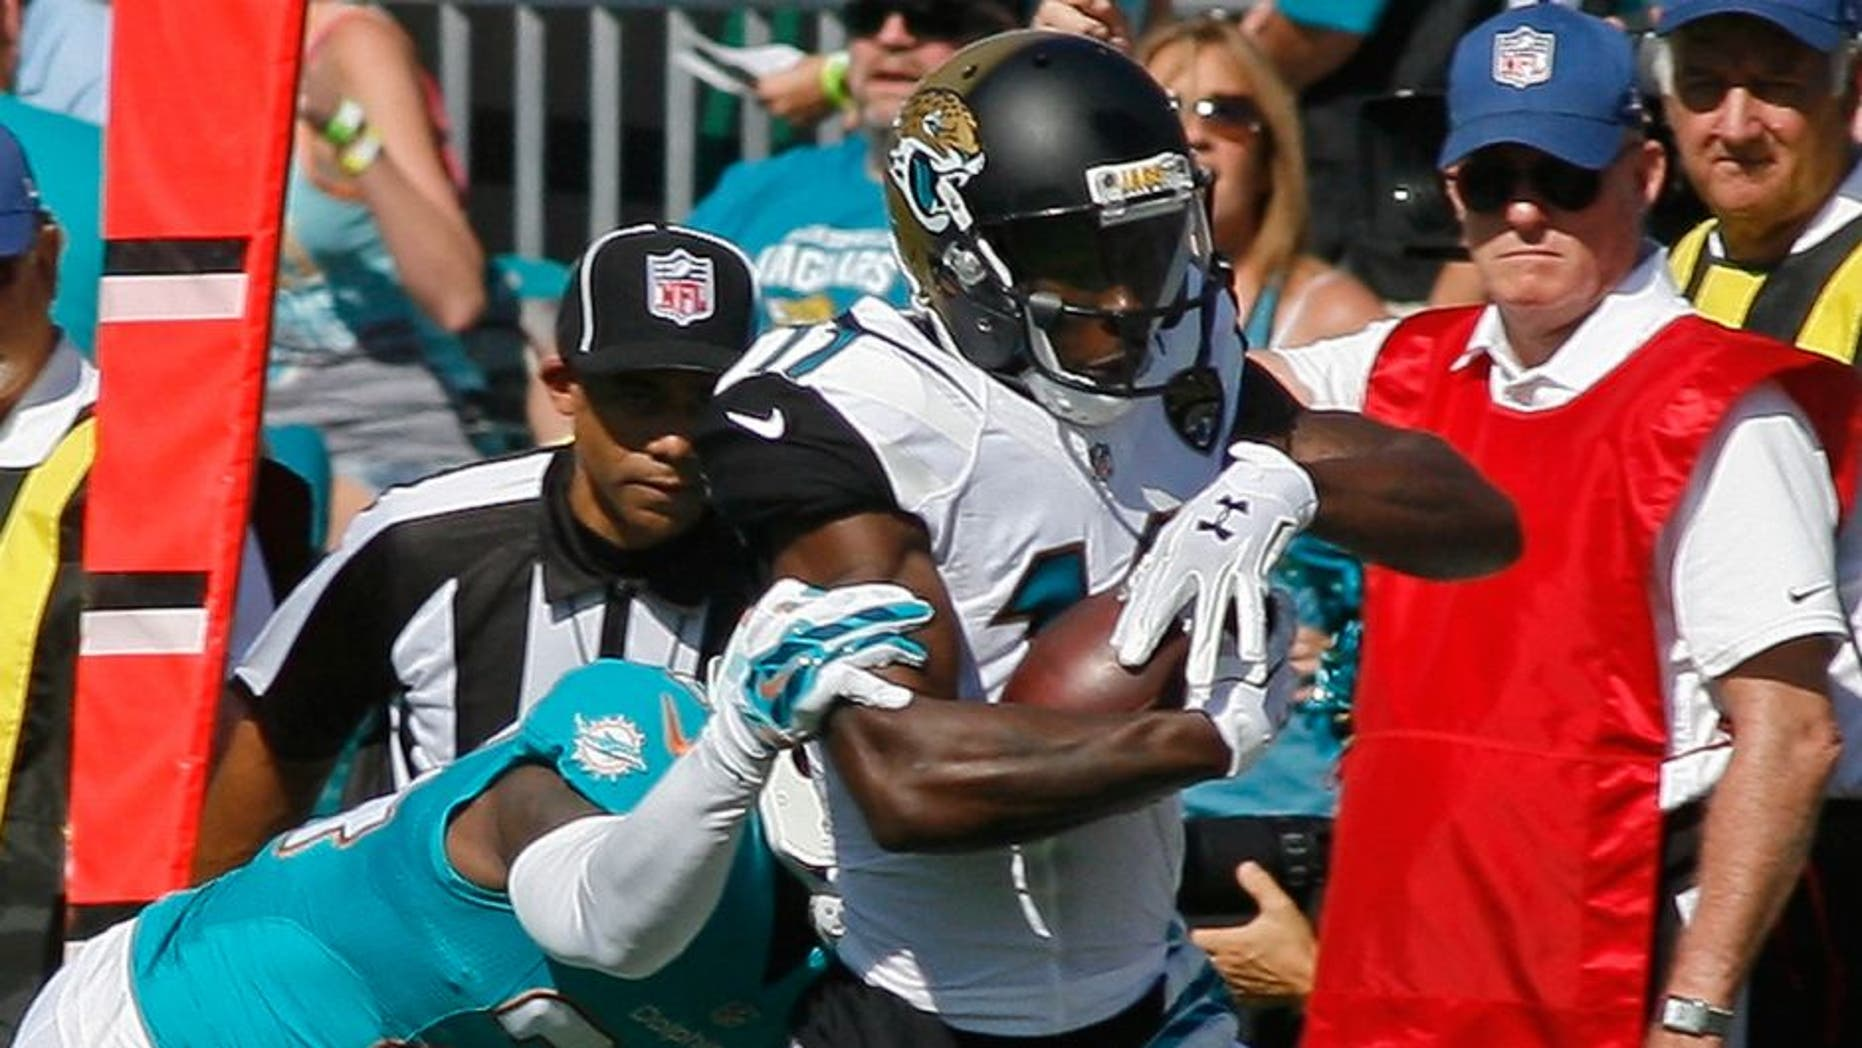 Sep 20, 2015; Jacksonville, FL, USA; Jacksonville Jaguars wide receiver Marqise Lee (11) tries to get by Miami Dolphins cornerback Brice McCain (24) on his first NFL catch in the first quarter at EverBank Field. Mandatory Credit: Phil Sears-USA TODAY Sports